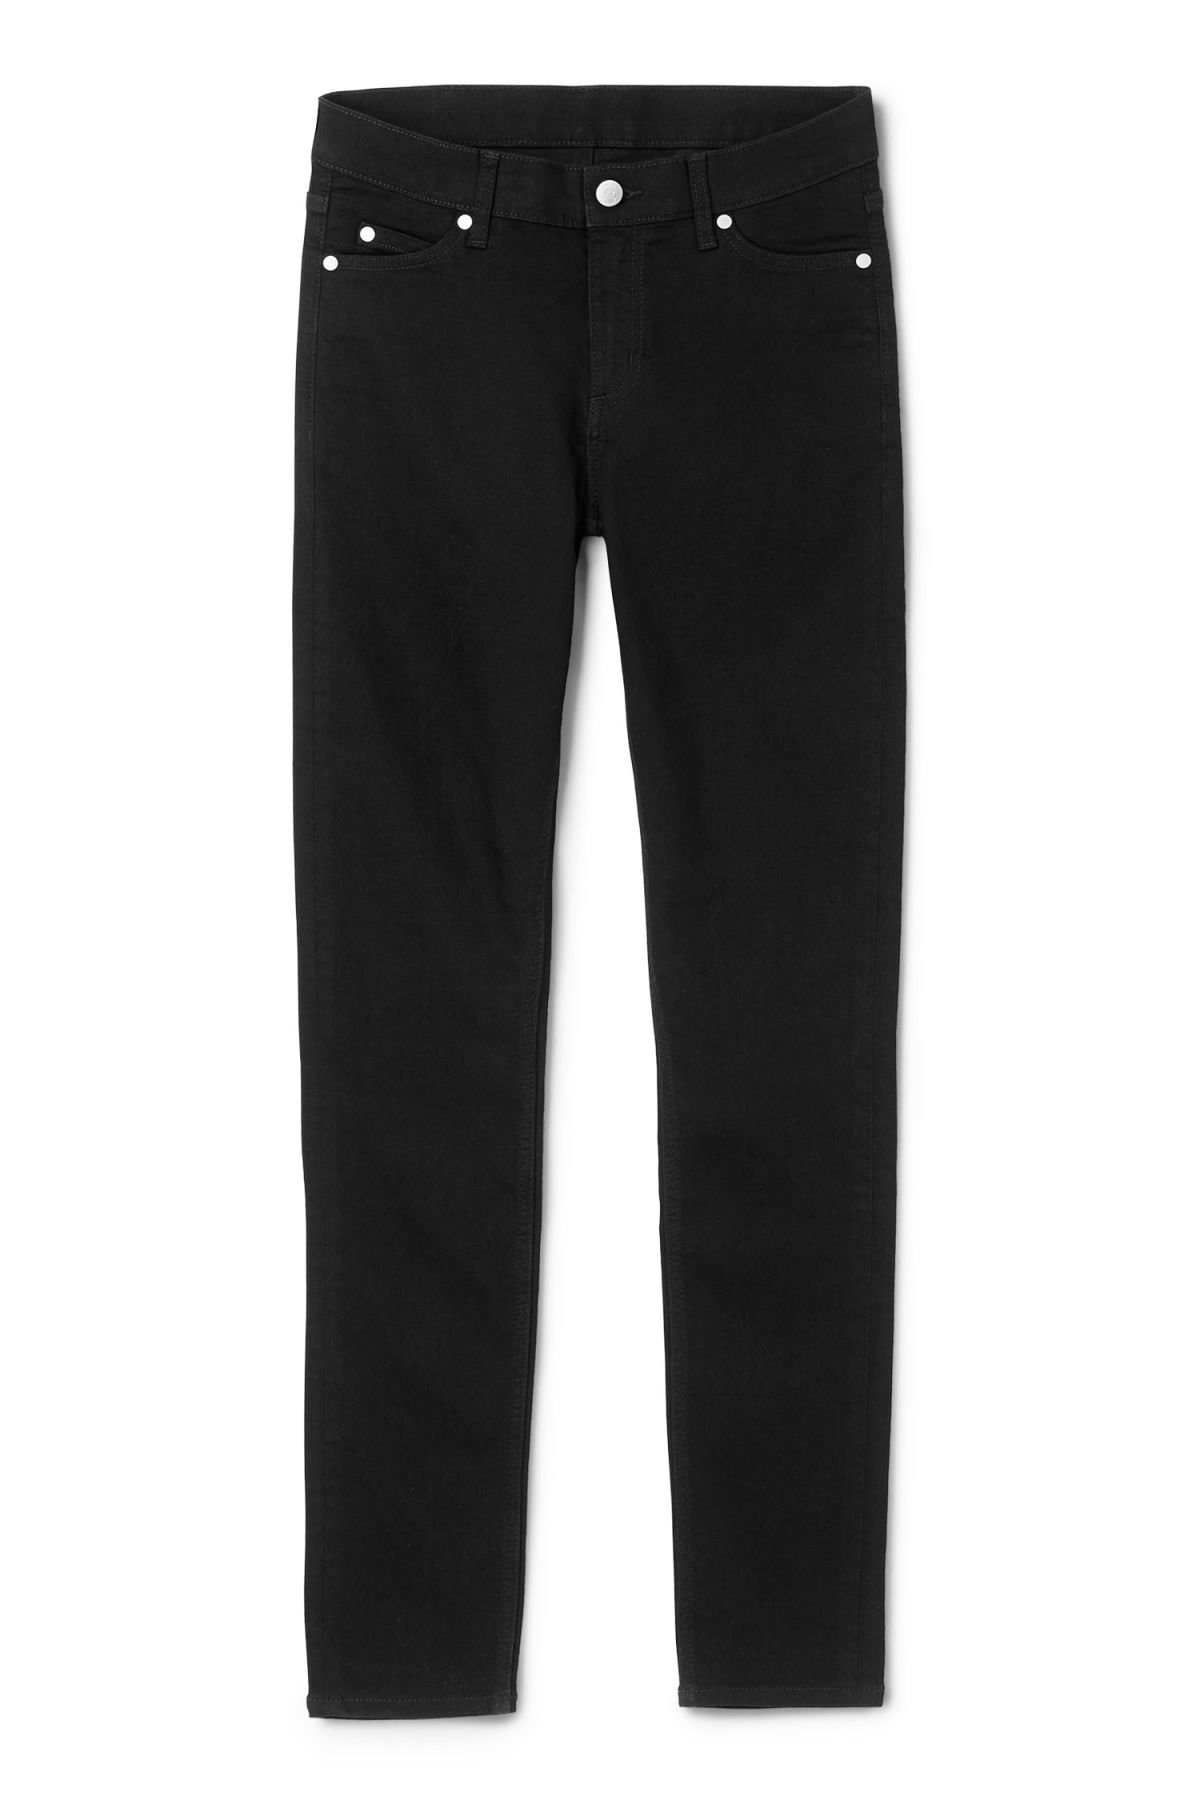 Front image of Weekday him spray black jeans in black